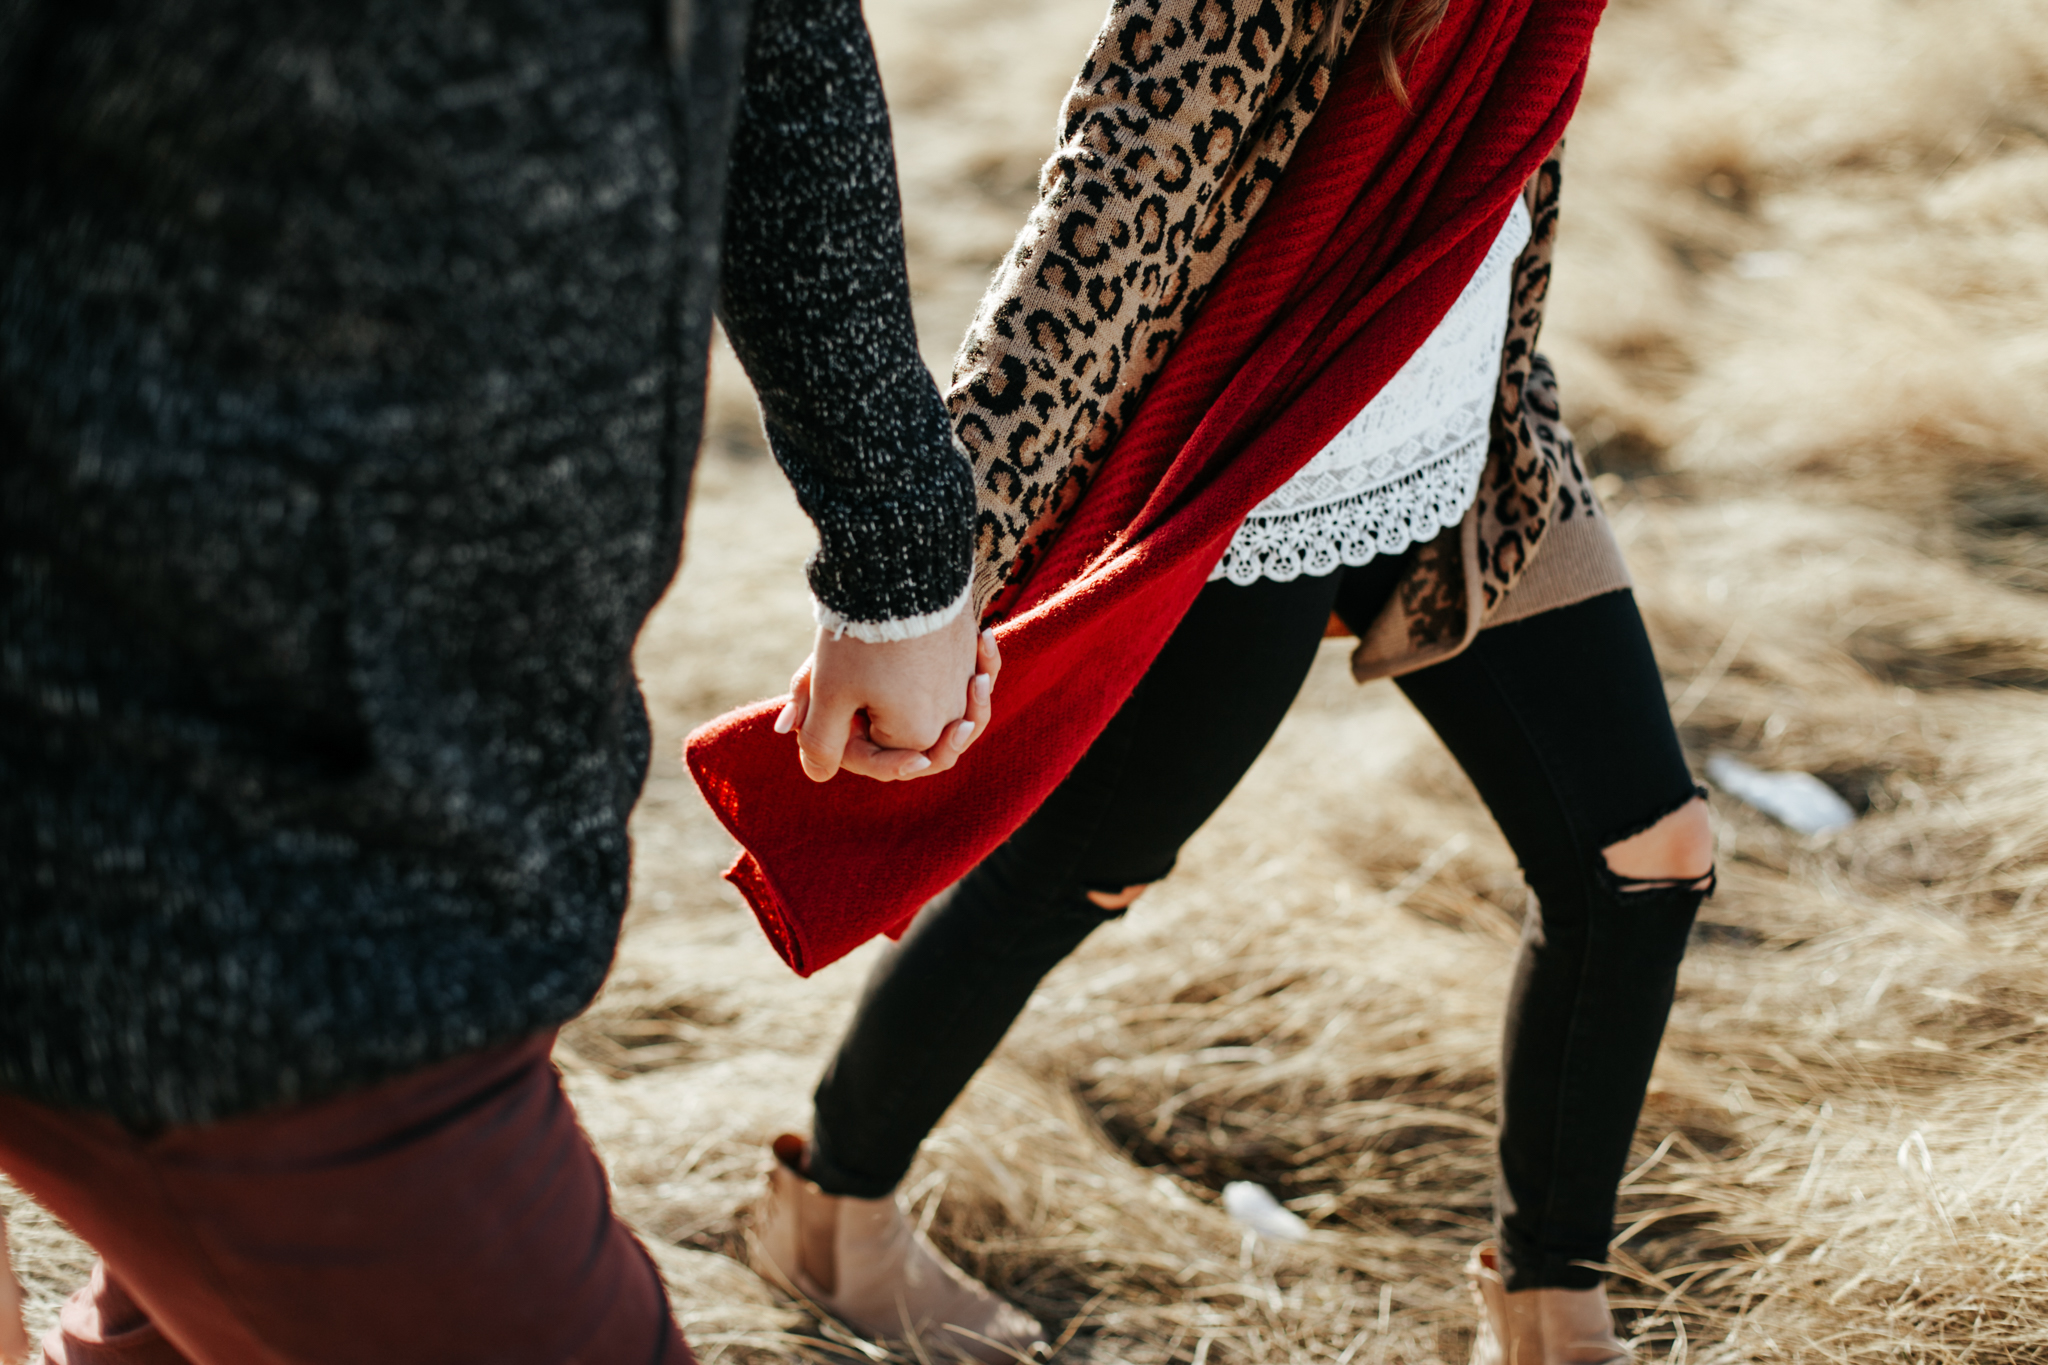 lethbridge-photographer-love-and-be-loved-photography-winter-engagement-emma-tanner-picture-image-photo-20.jpg